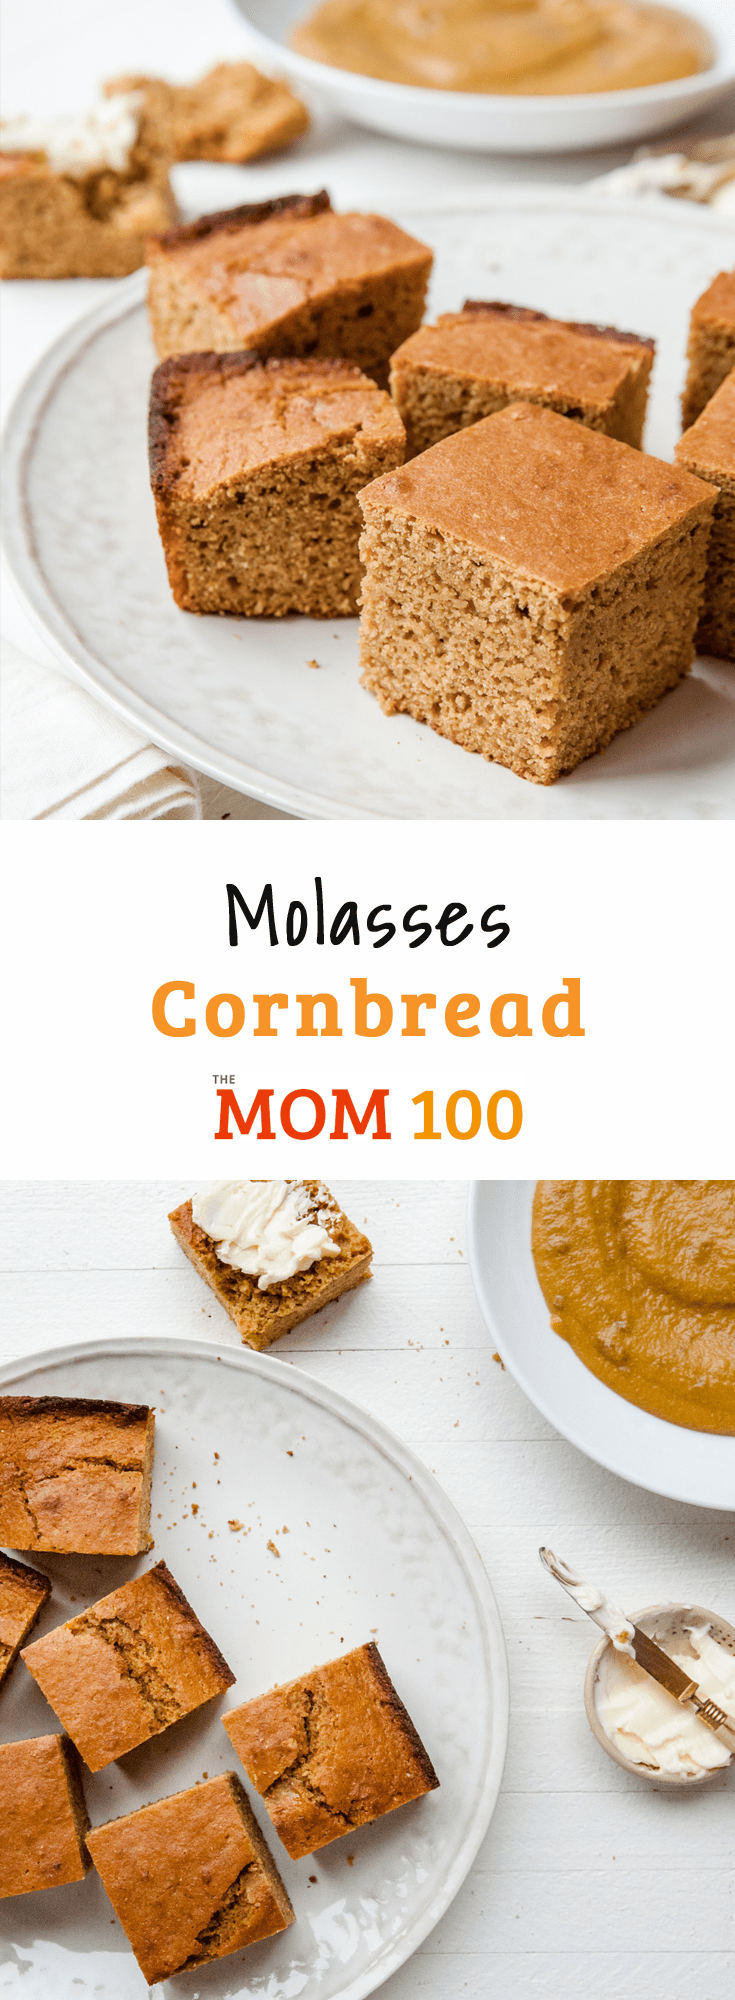 Molasses Cornbread / A little bit of molasses turns simple, basic cornbread into something with a bit more depth and interest.